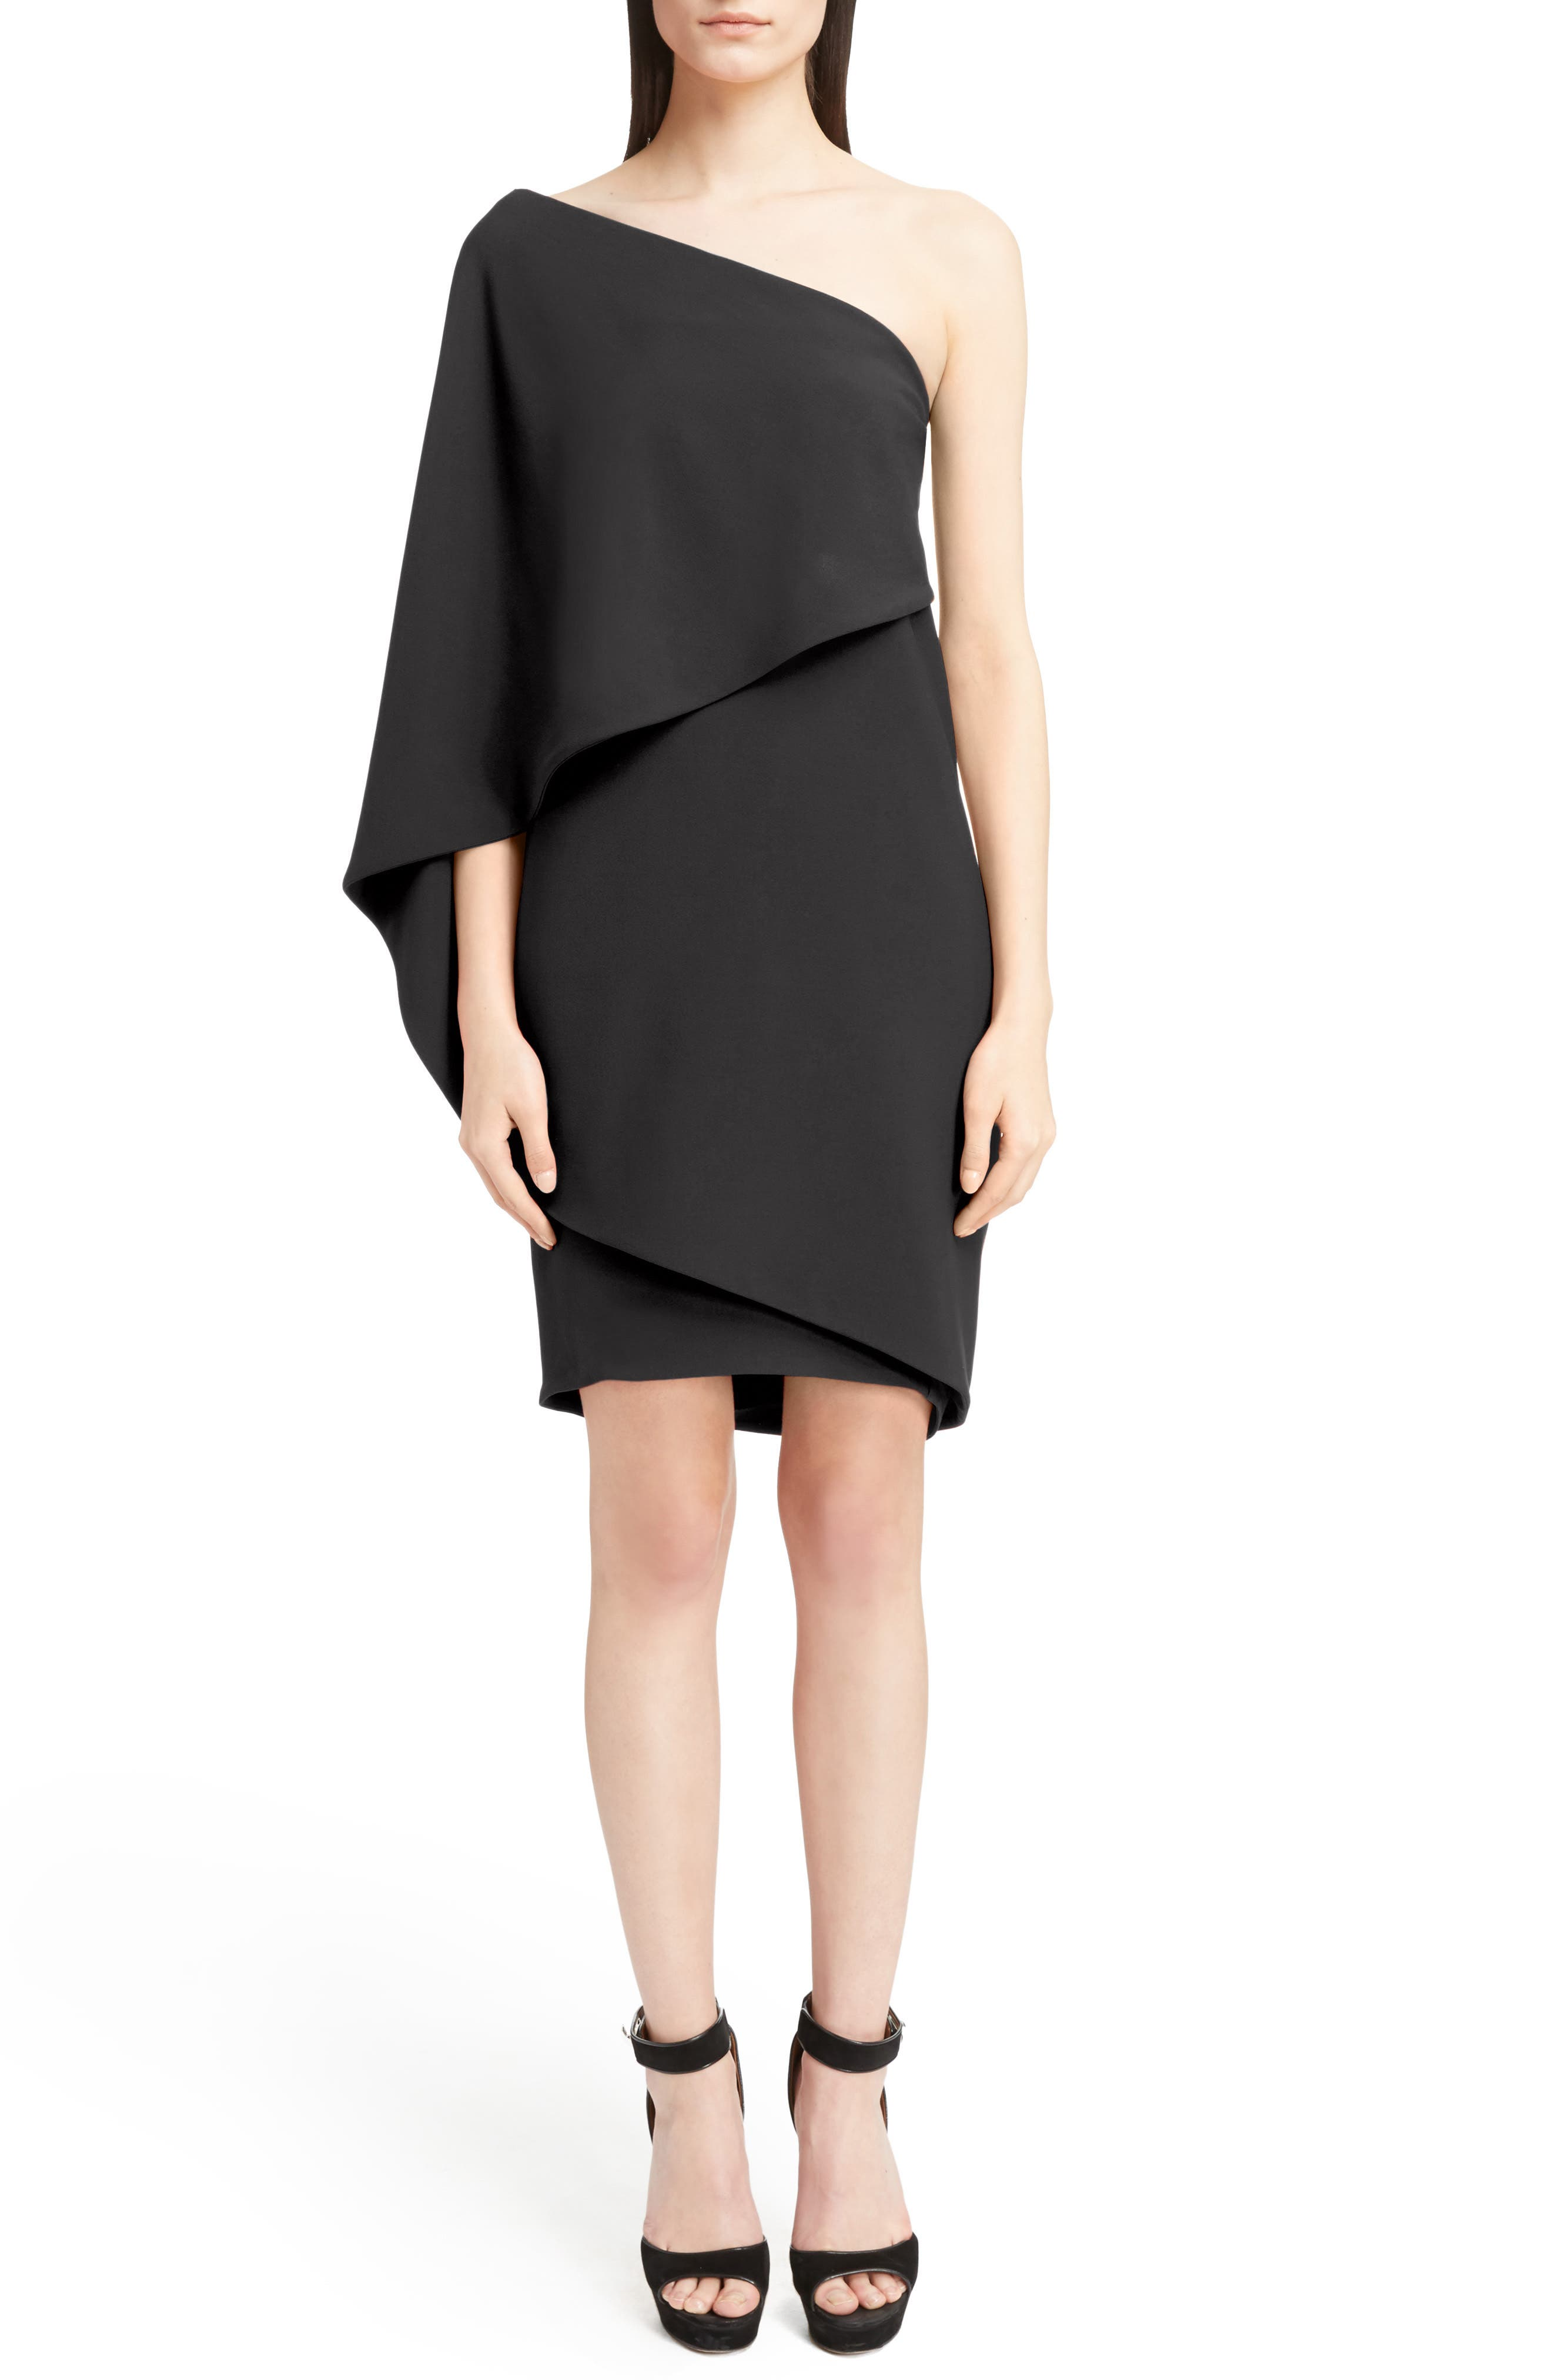 Alternate Image 1 Selected - Givenchy Stretch Cady Cape Dress